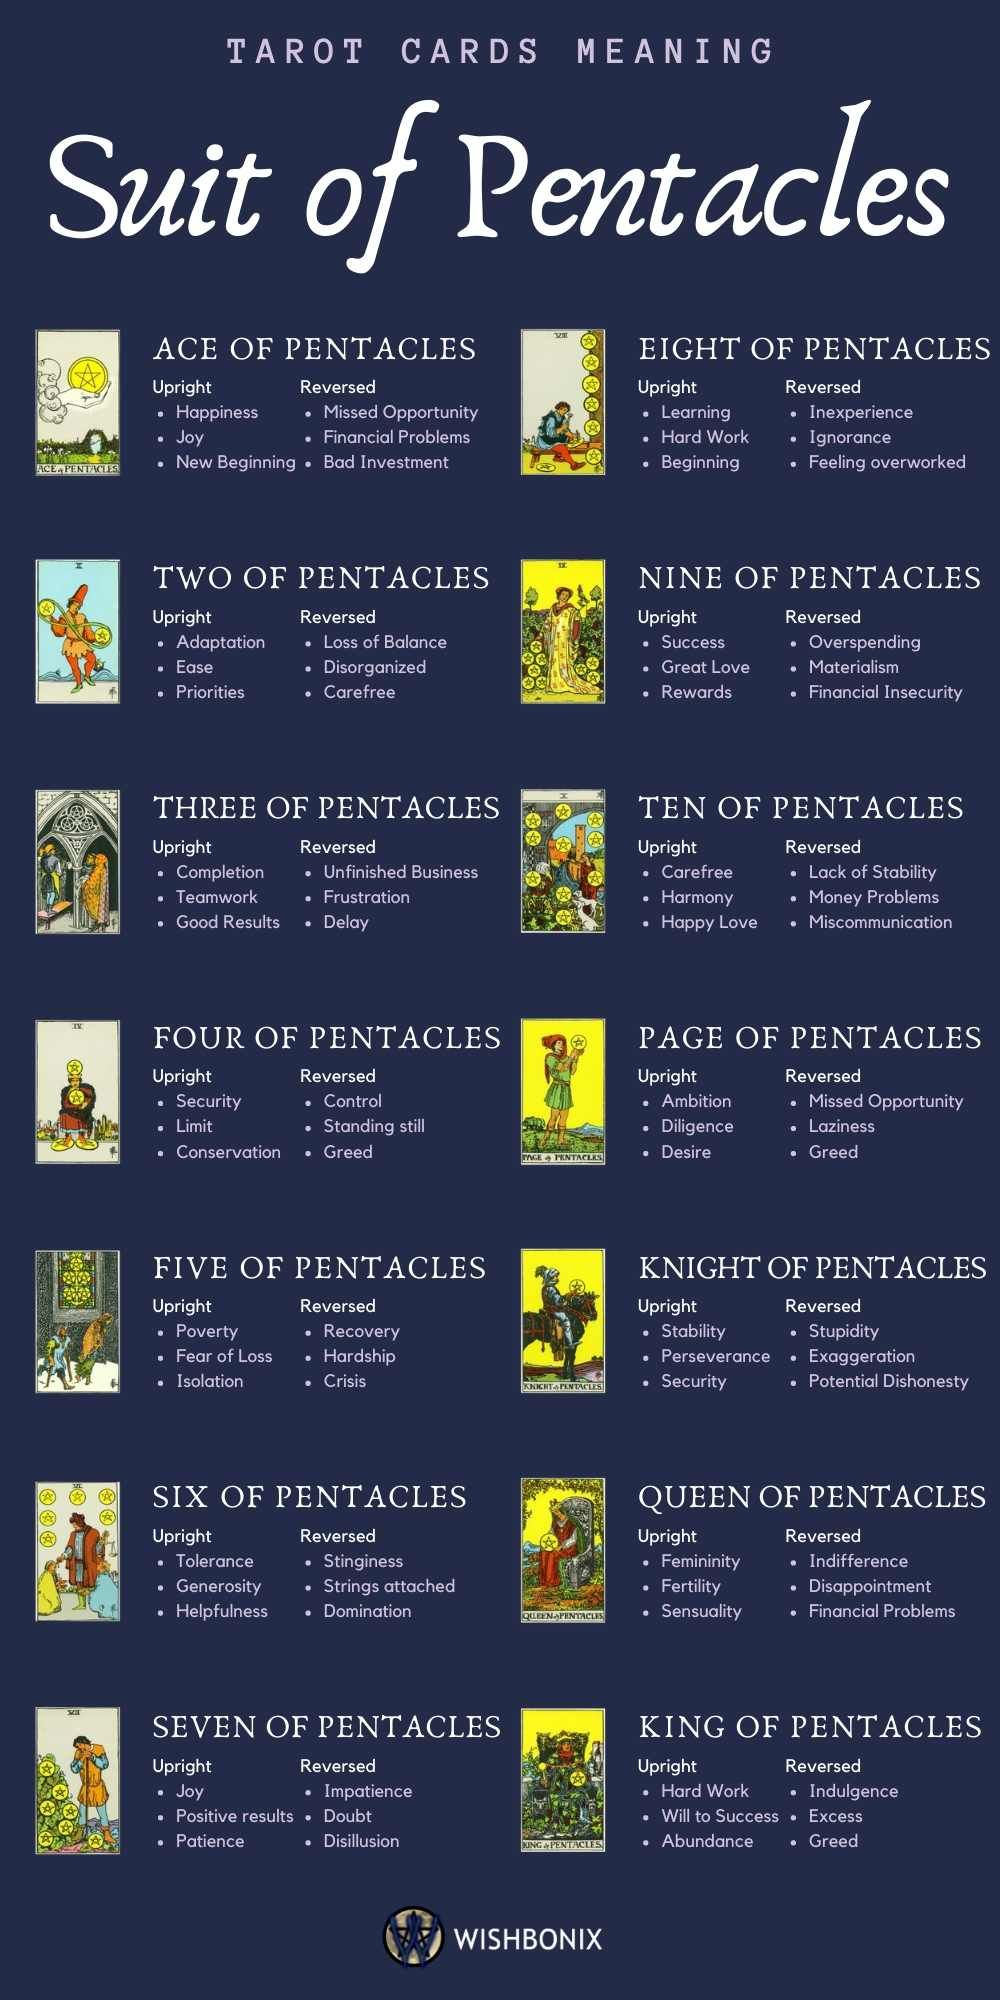 The Suit of Pentacles - Tarot Cards Meaning